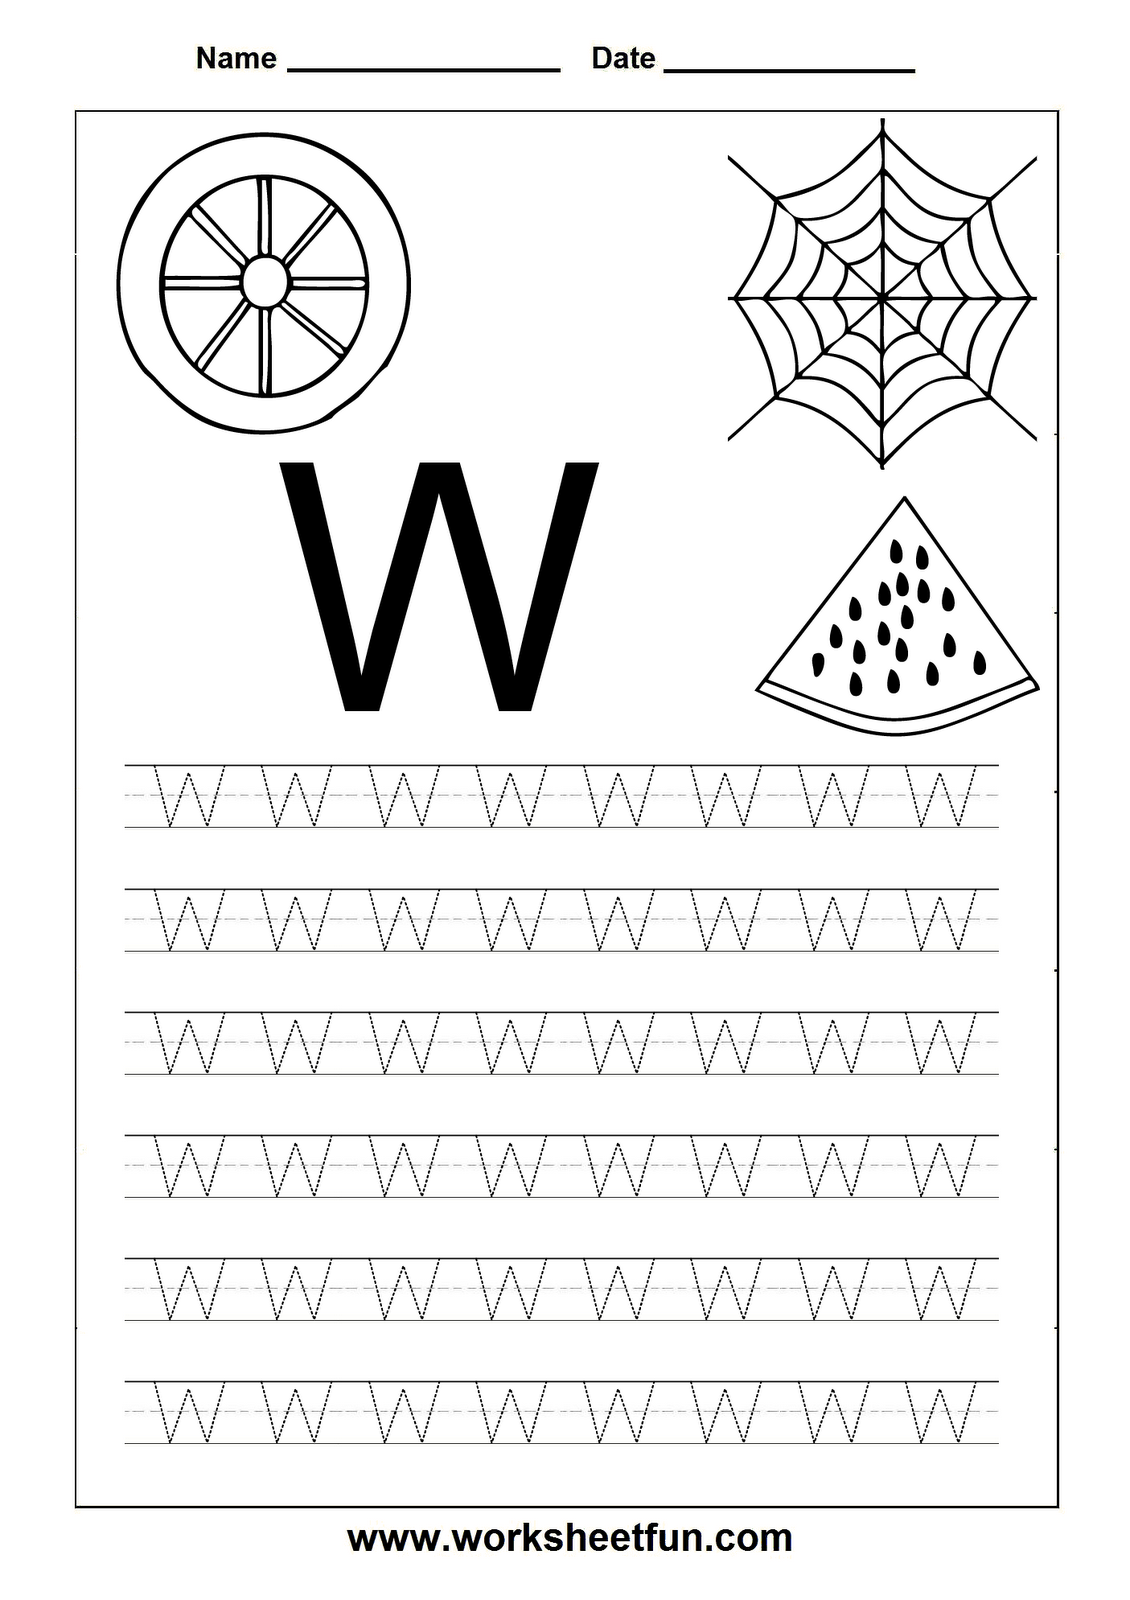 Free Printable Worksheets: Letter Tracing Worksheets For for Letter W Tracing Worksheets